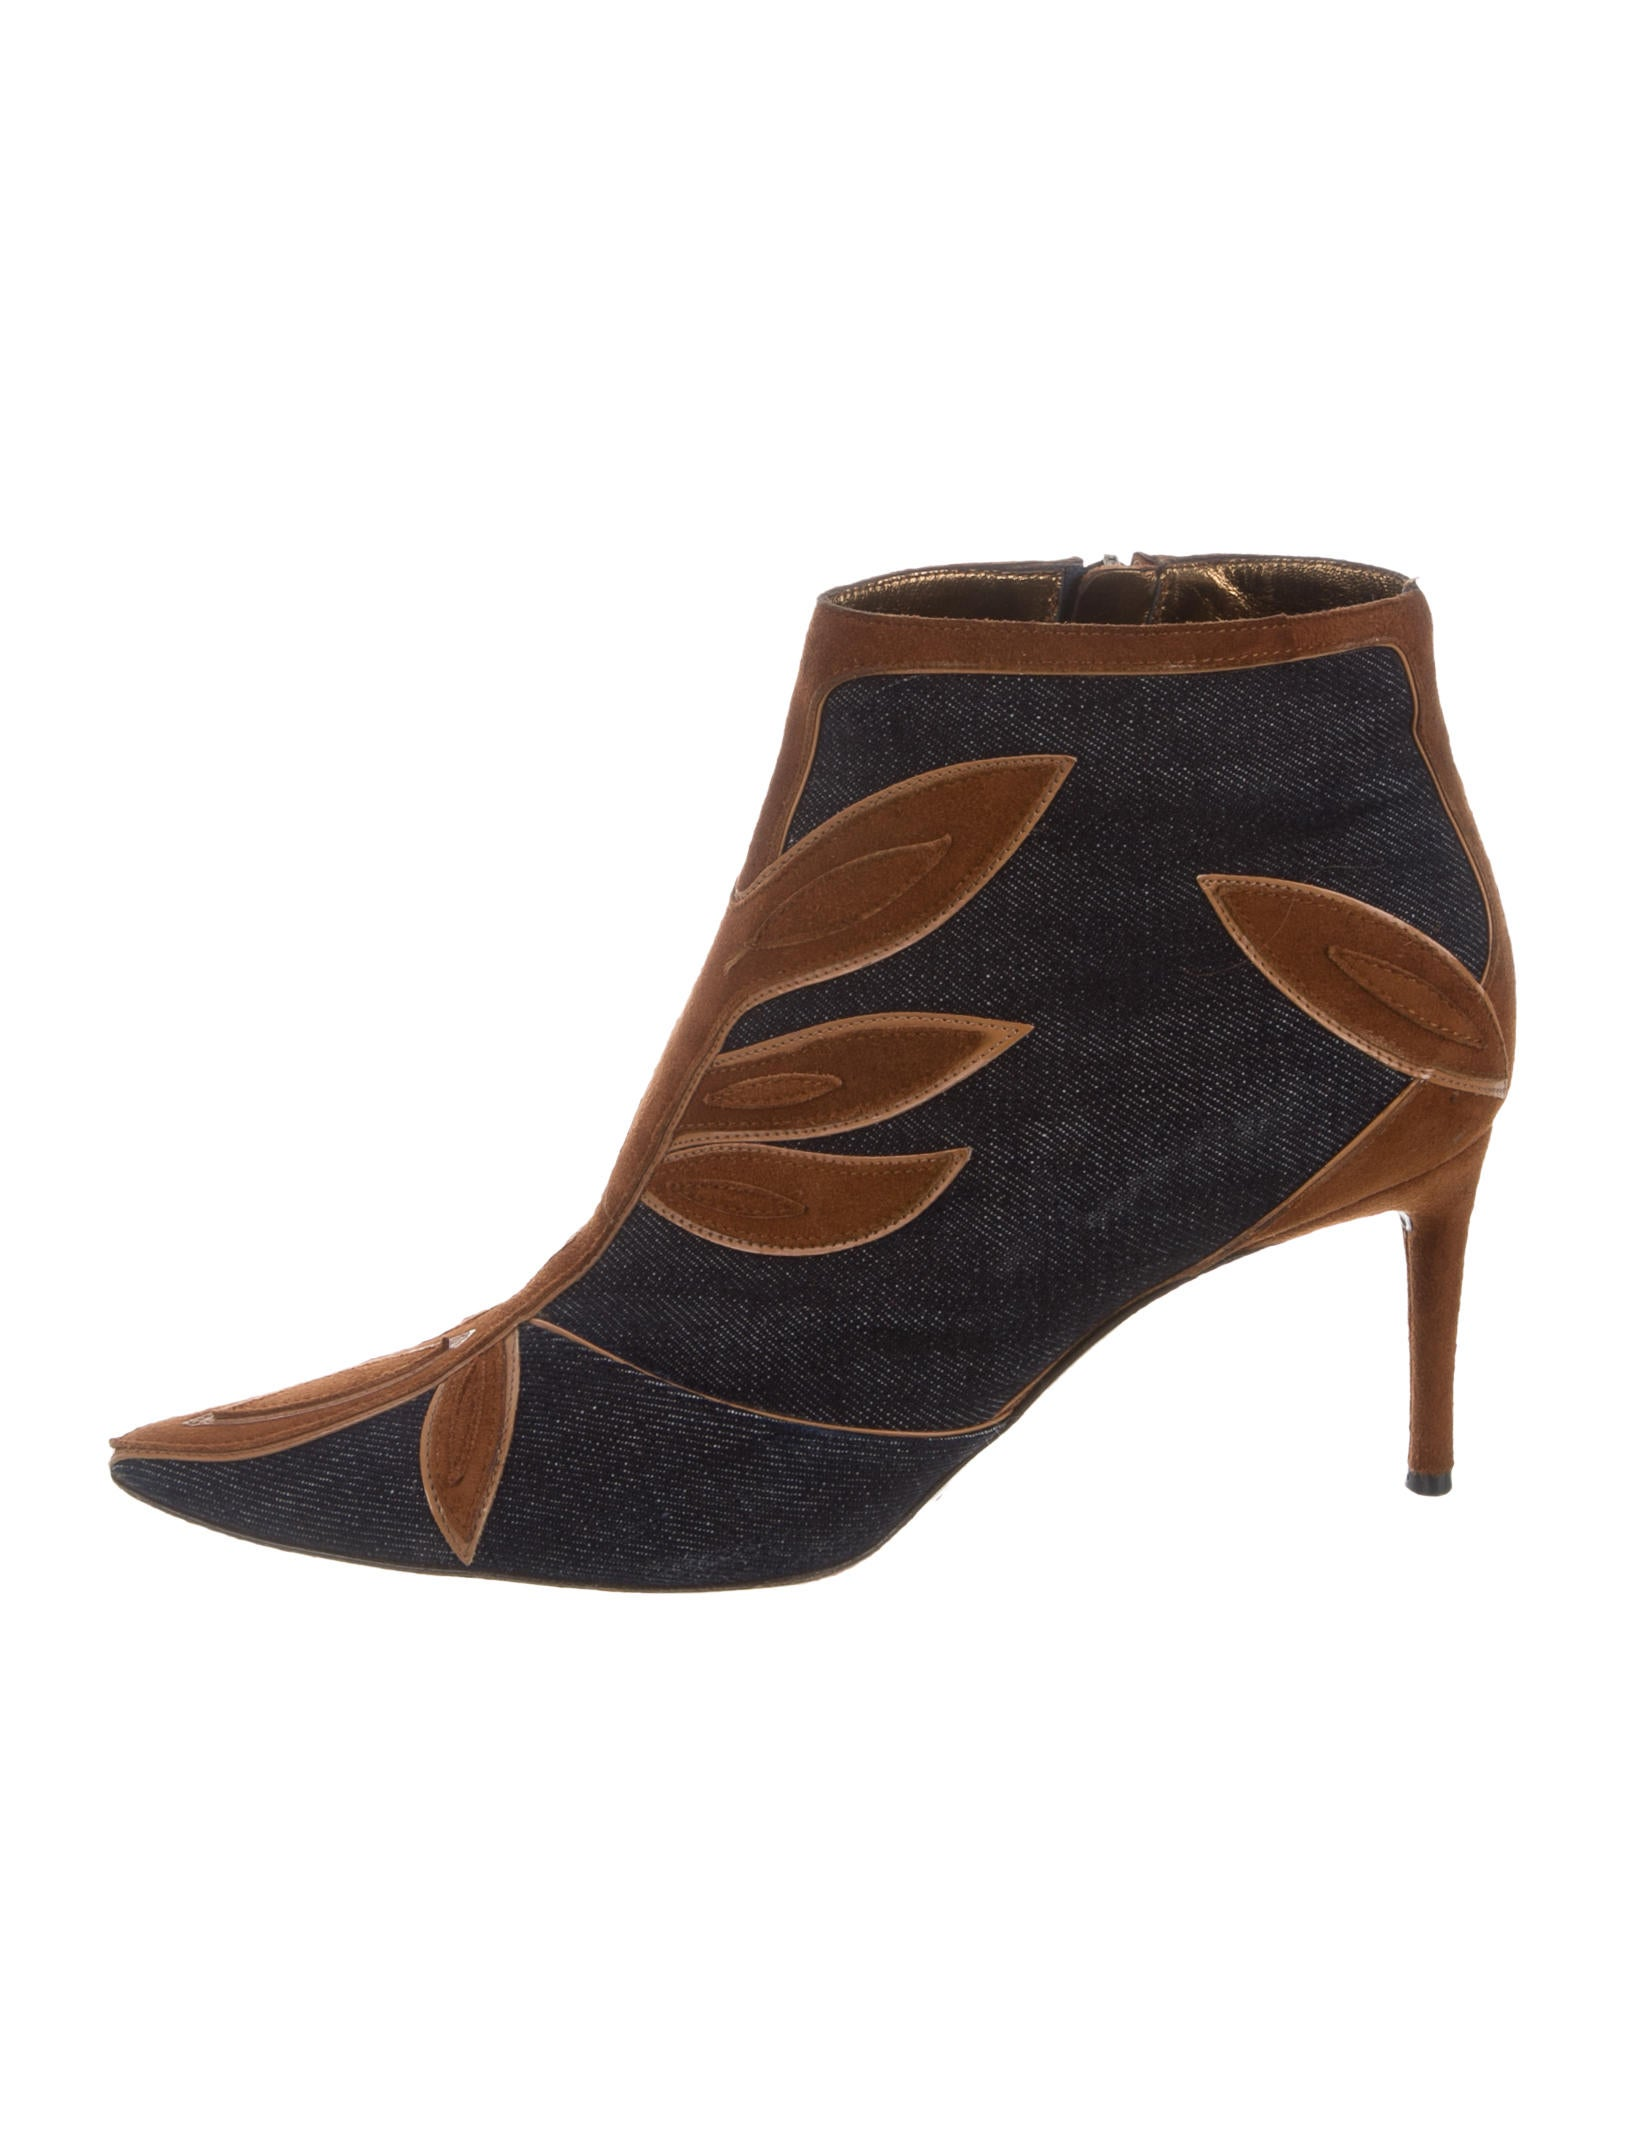 dolce gabbana denim suede ankle boots shoes